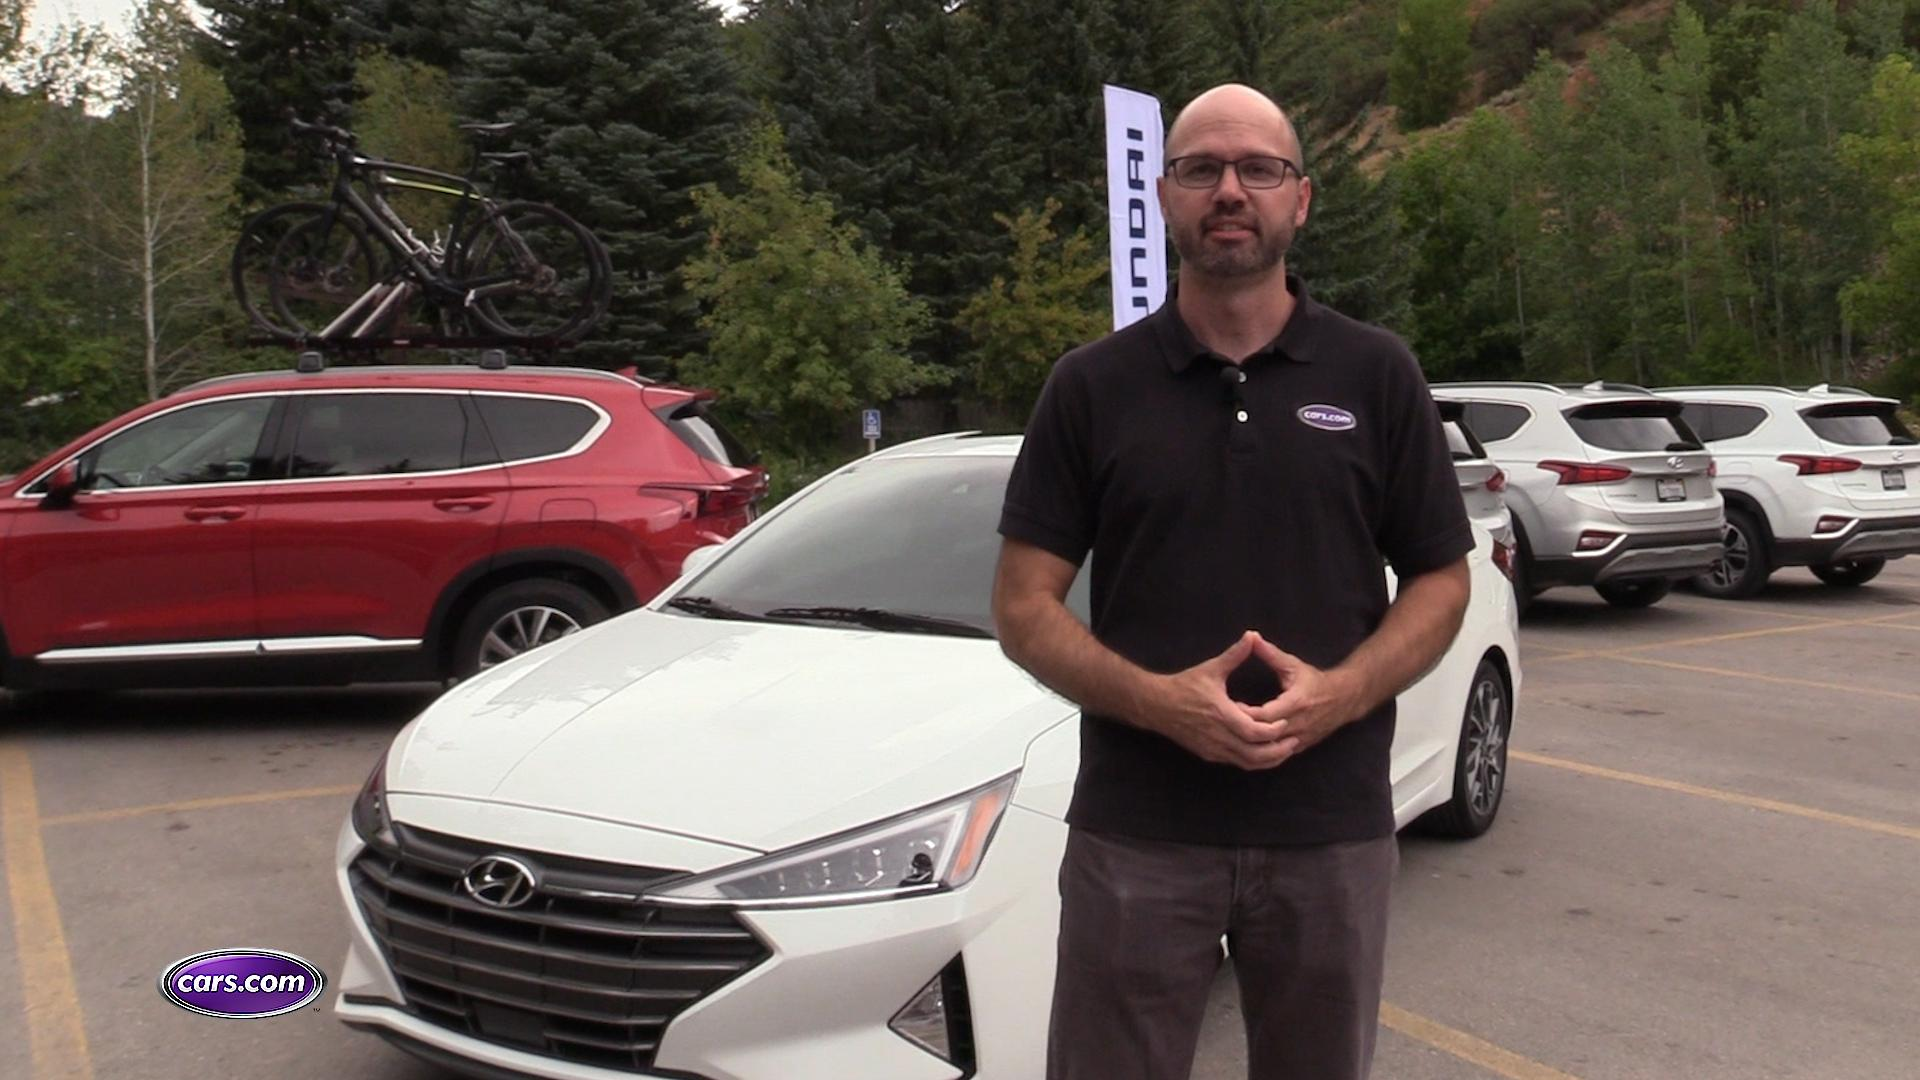 Video: 2019 Hyundai Elantra: First Look — Cars.com